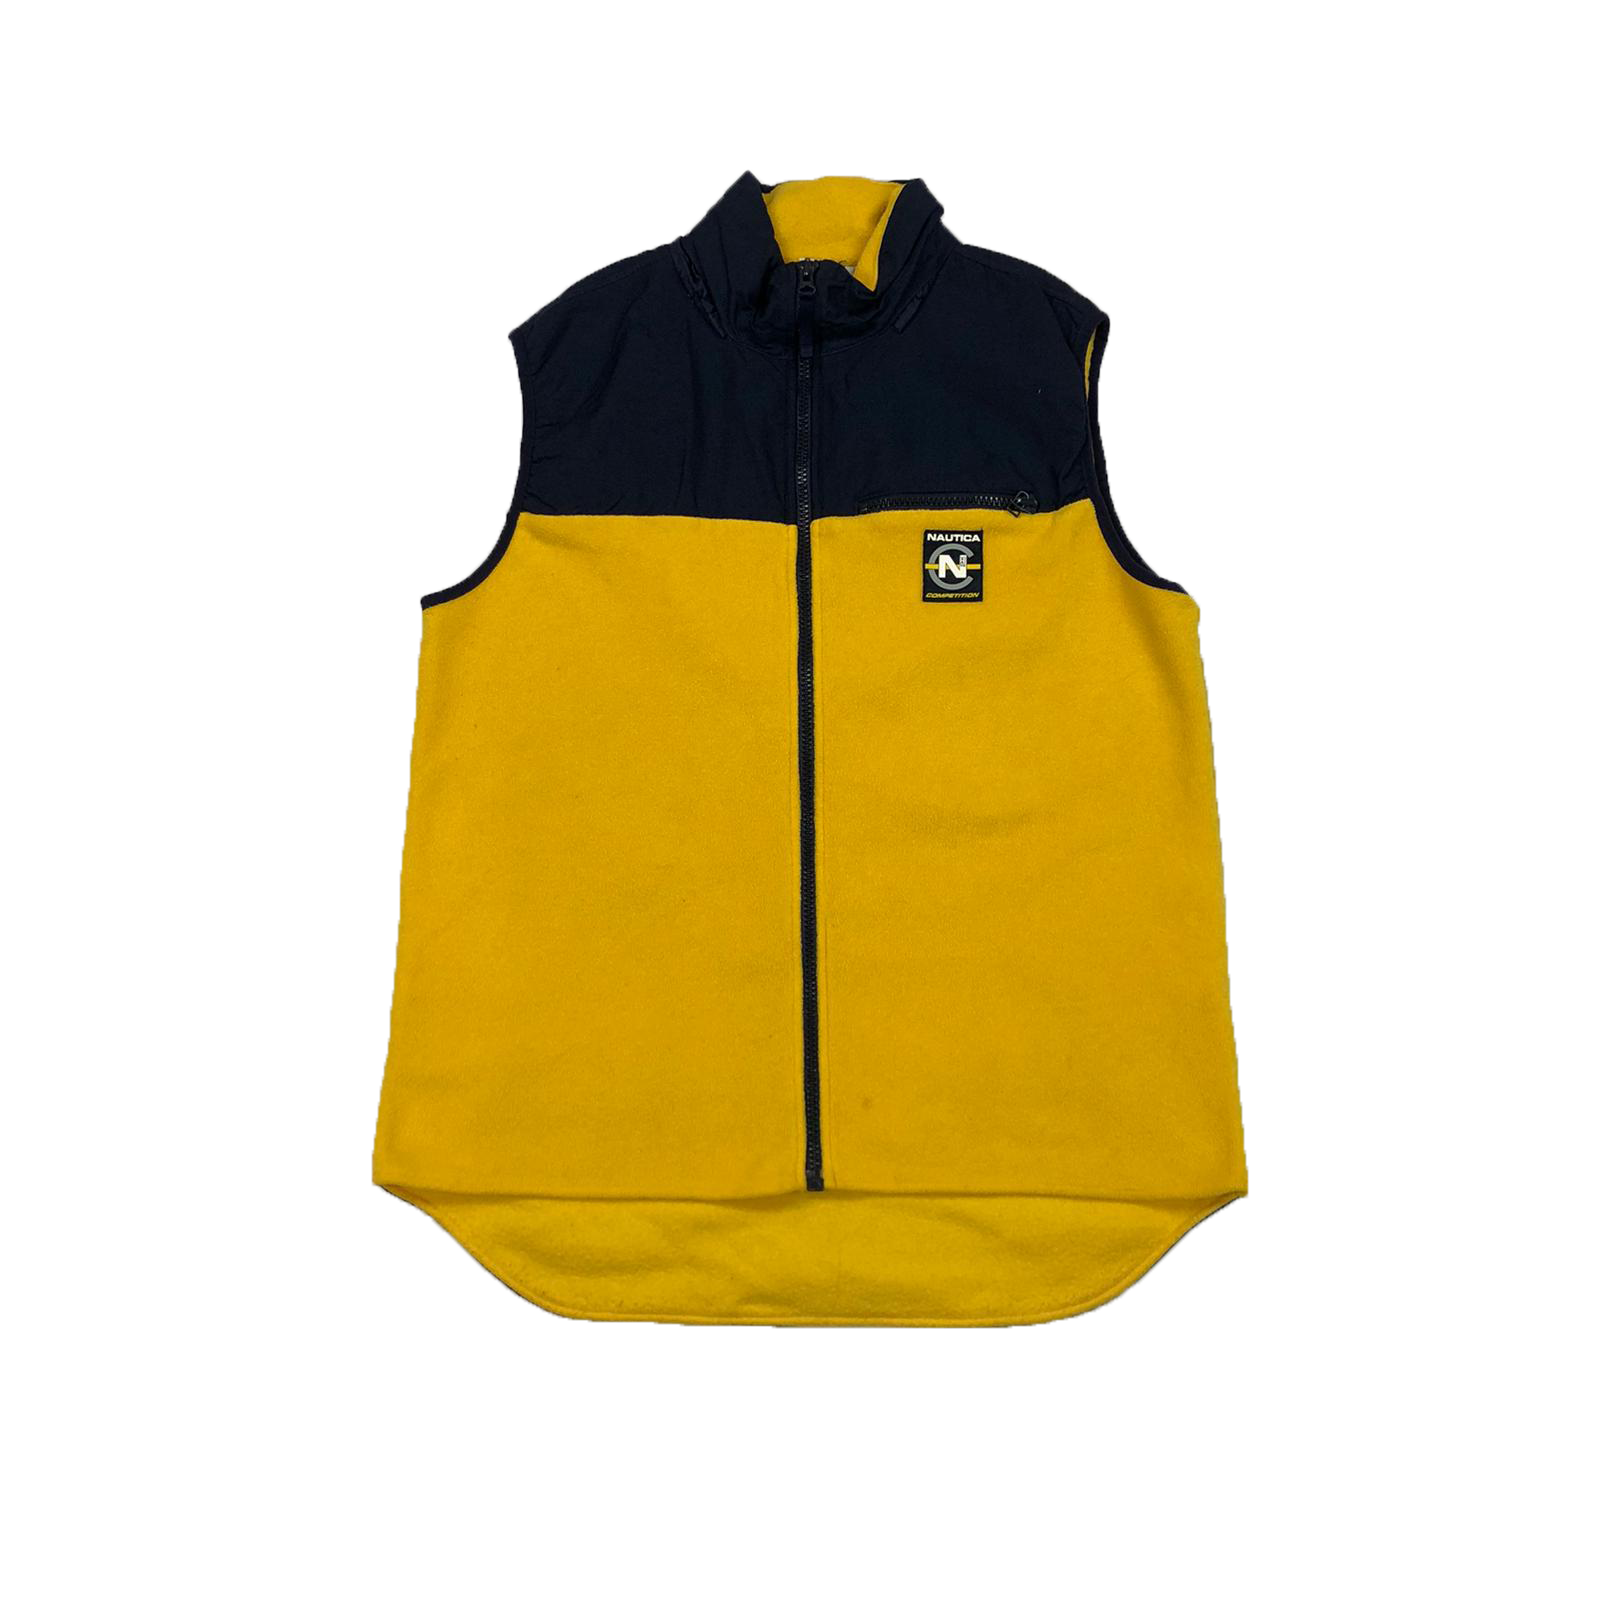 Nautica Competition fleece gilet